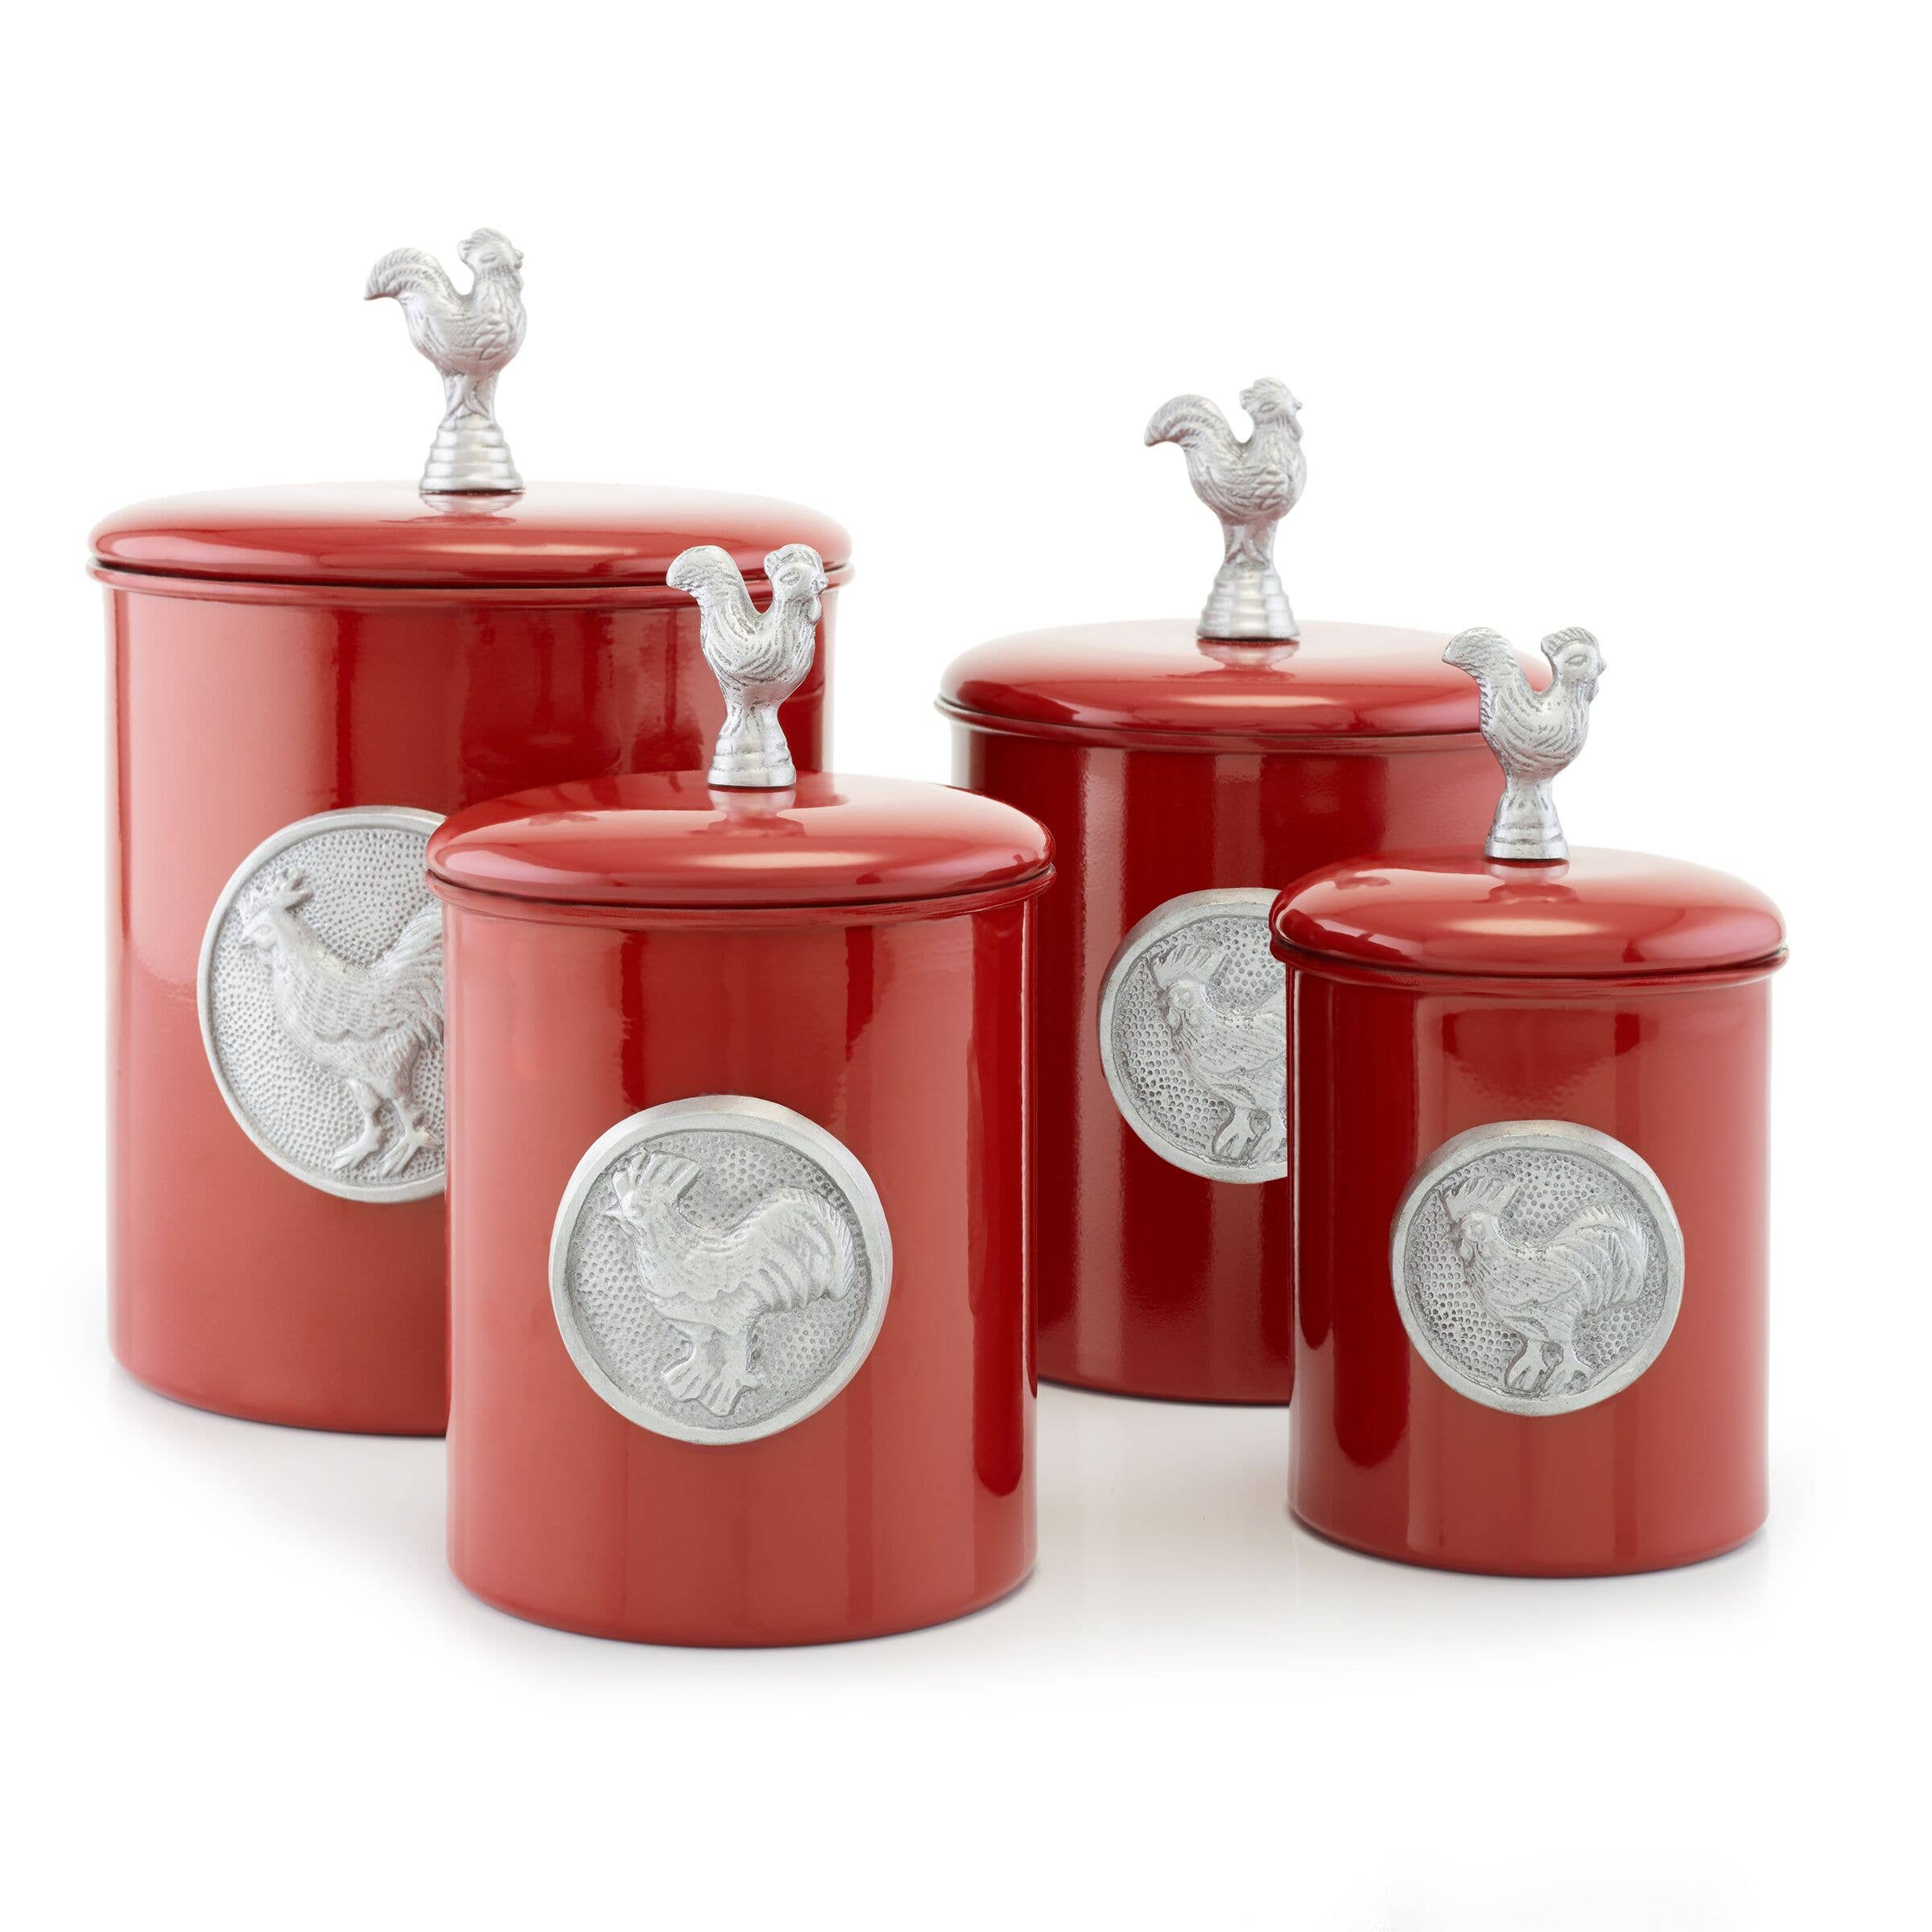 Red Rooster Canister Set with Rooster Medallion and Knob-Old Dutch International